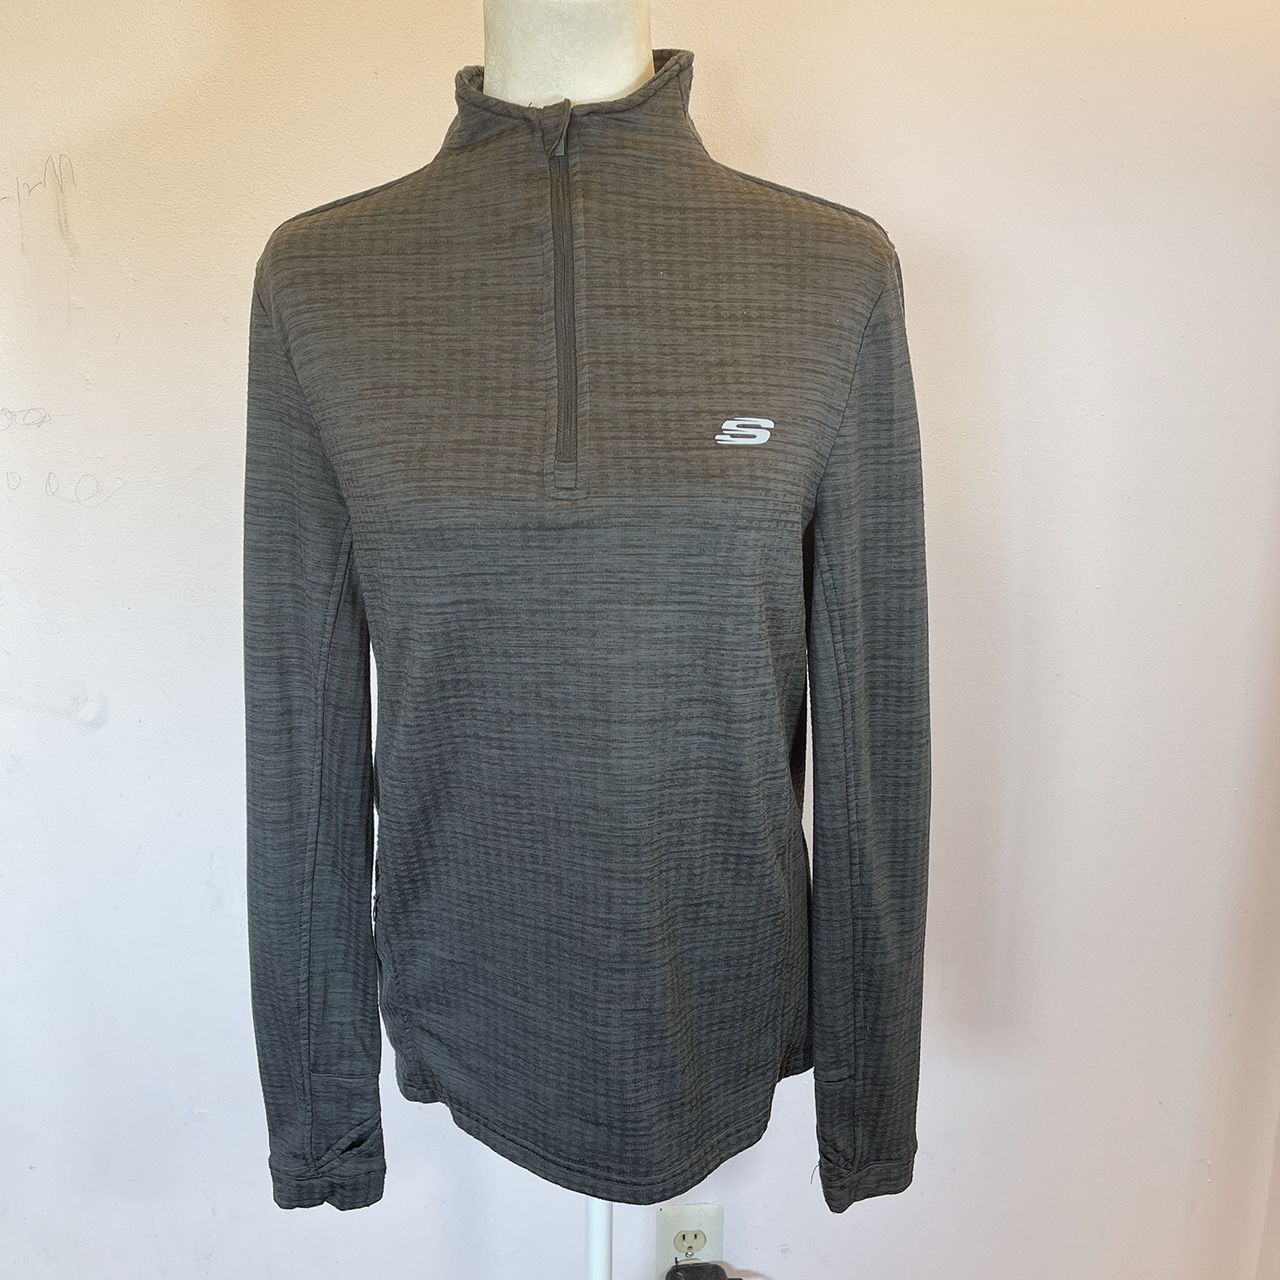 Product Image 1 - Skechers Sport Pullover Woman. This